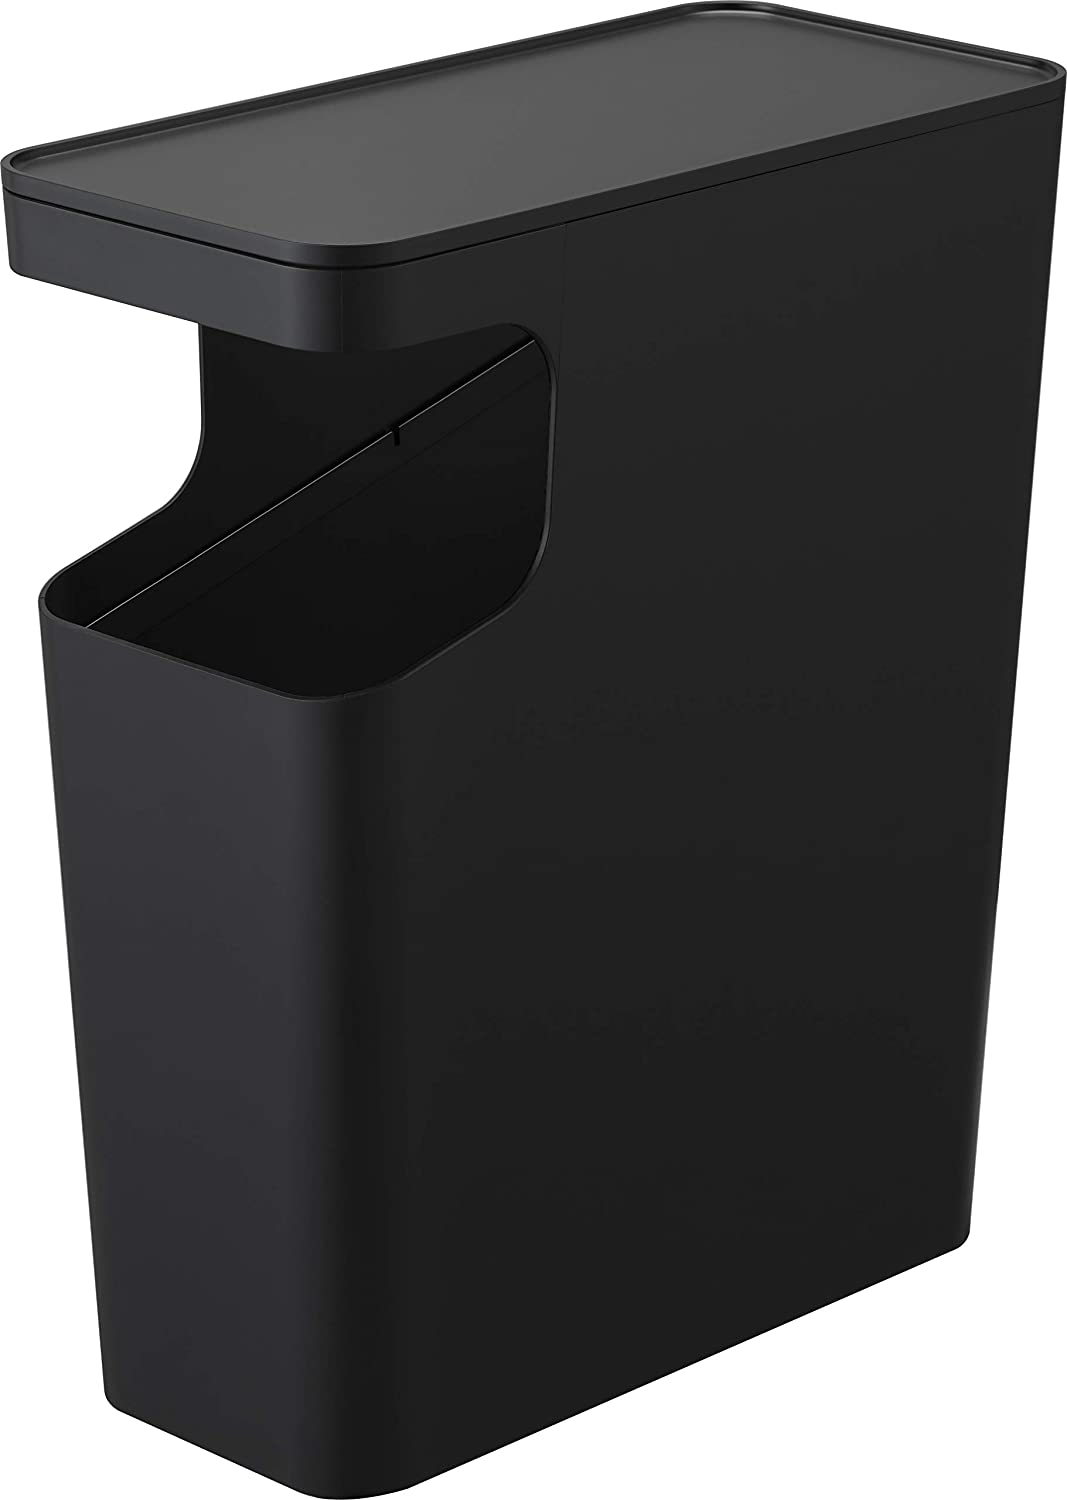 YAMAZAKI home Tower Side table and Trash can Black